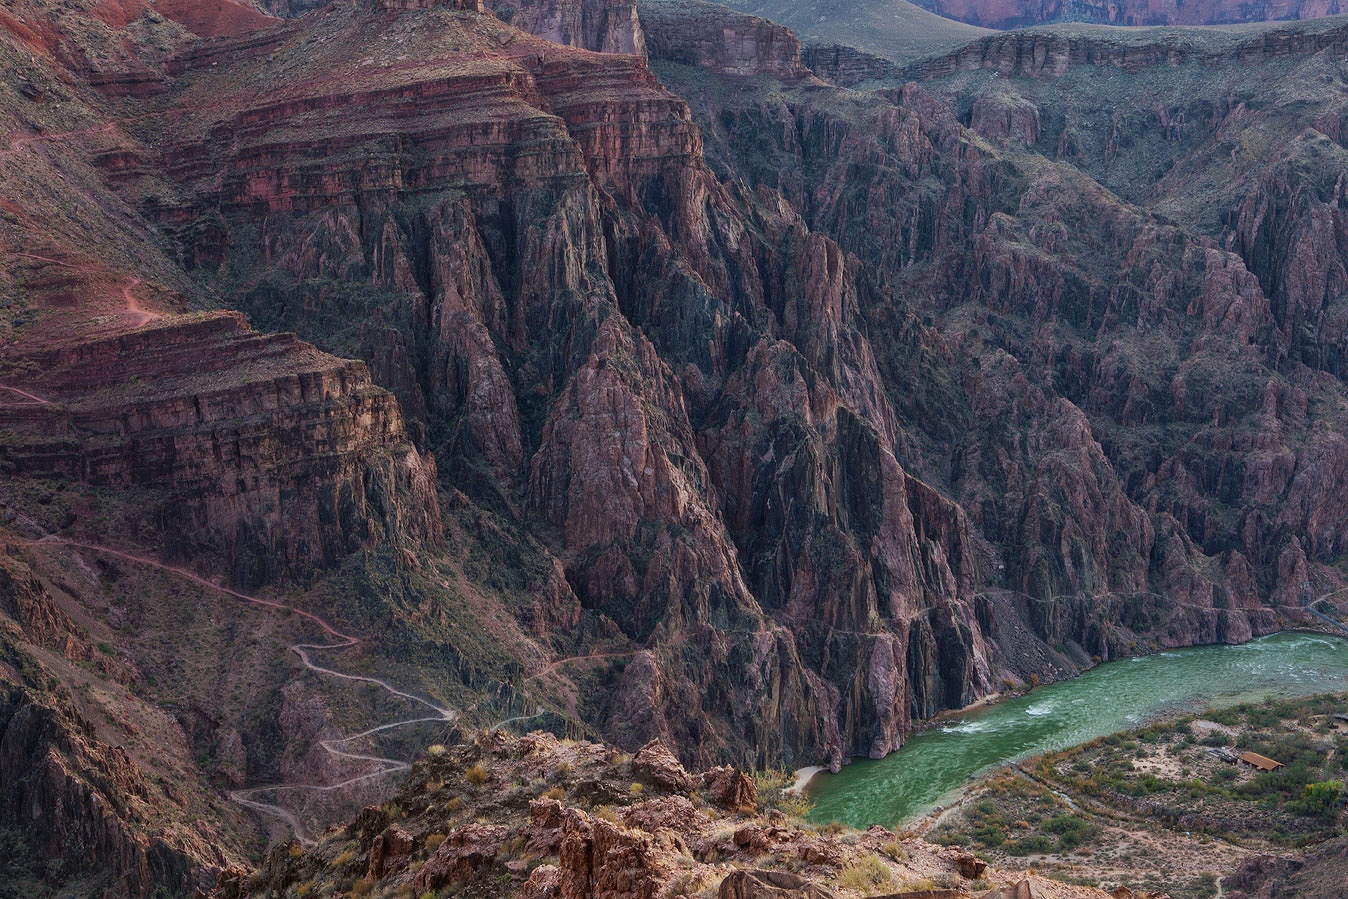 The Colorado River and the Inner Gorge of the Grand Canyon.